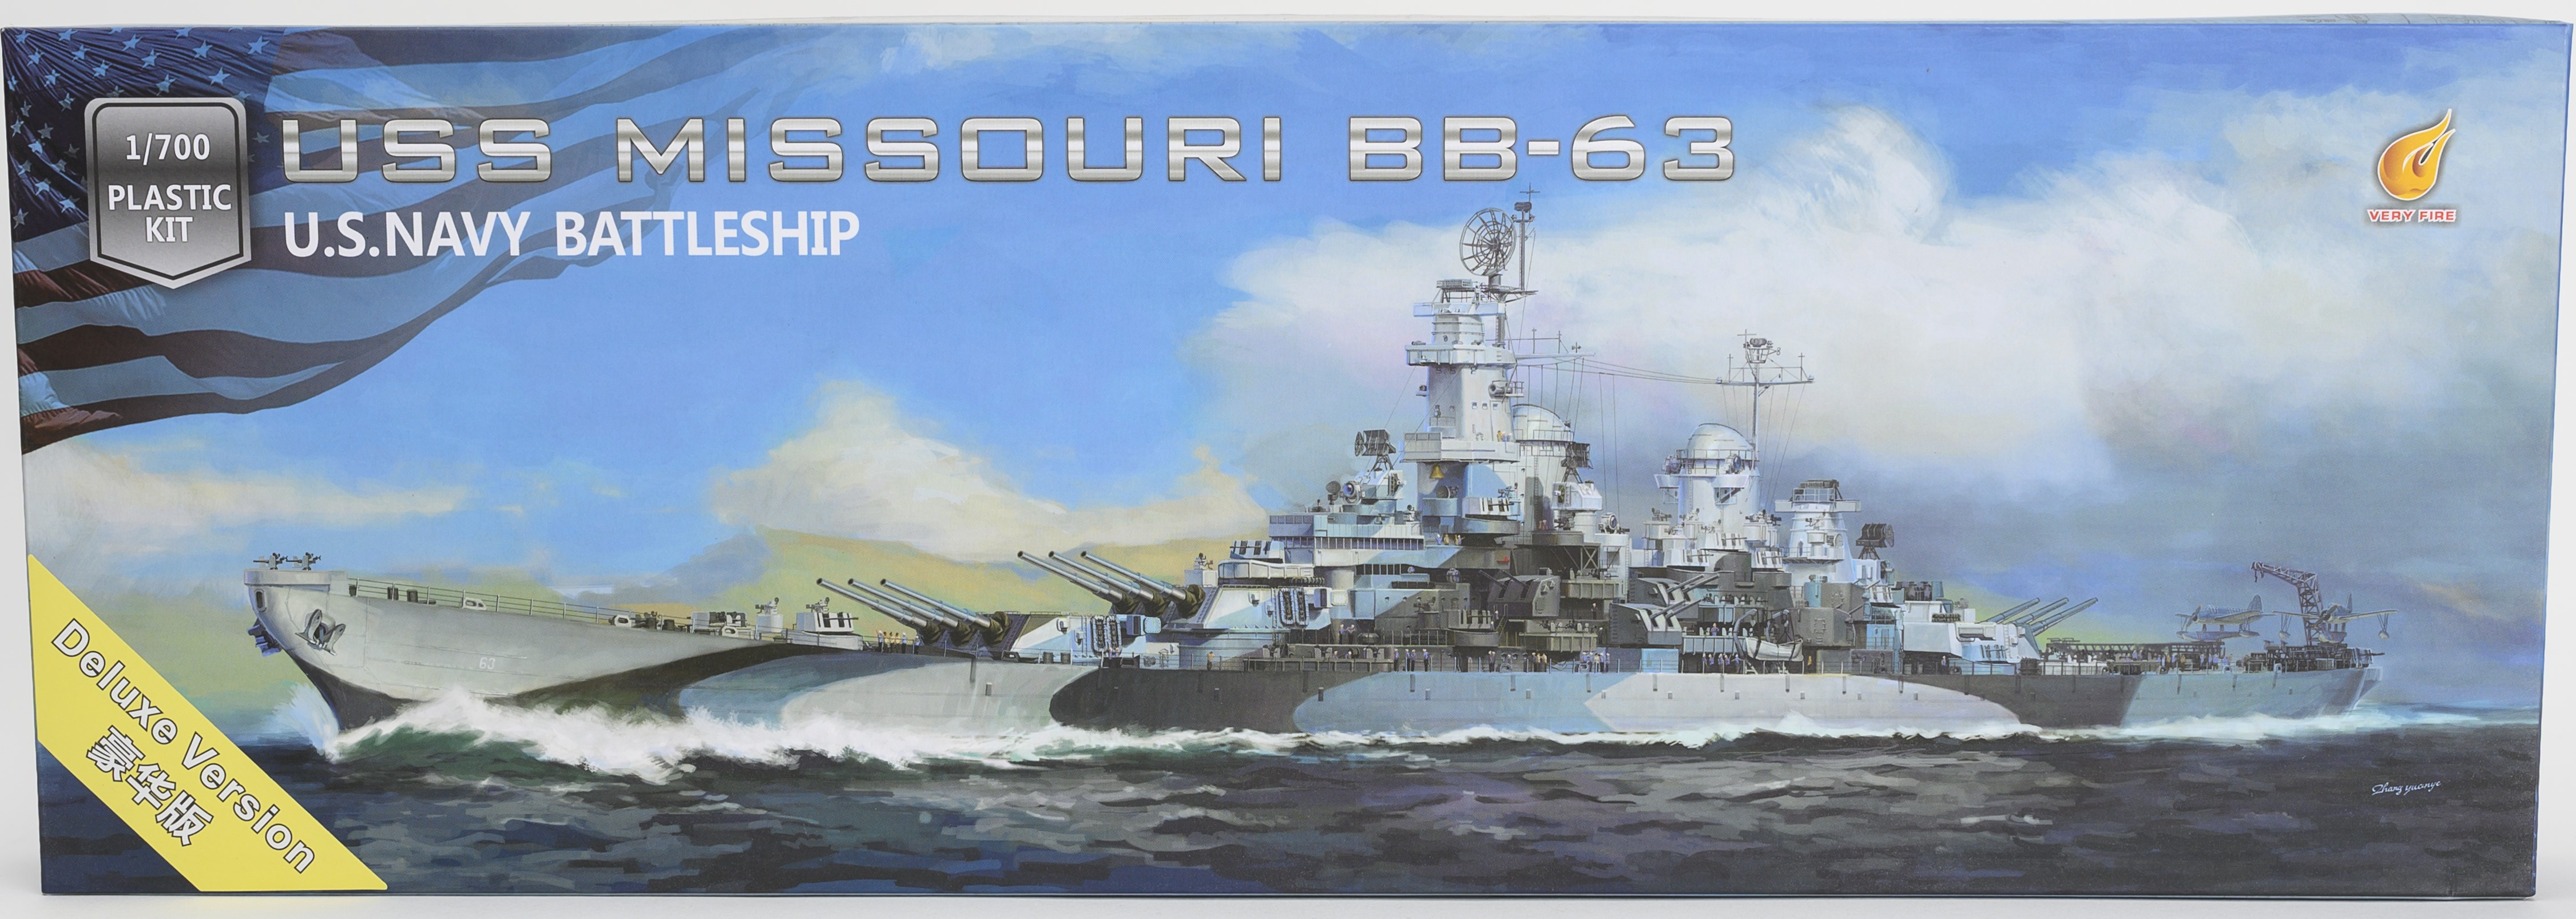 Very Fire 1/700 USS Missouri BB-63